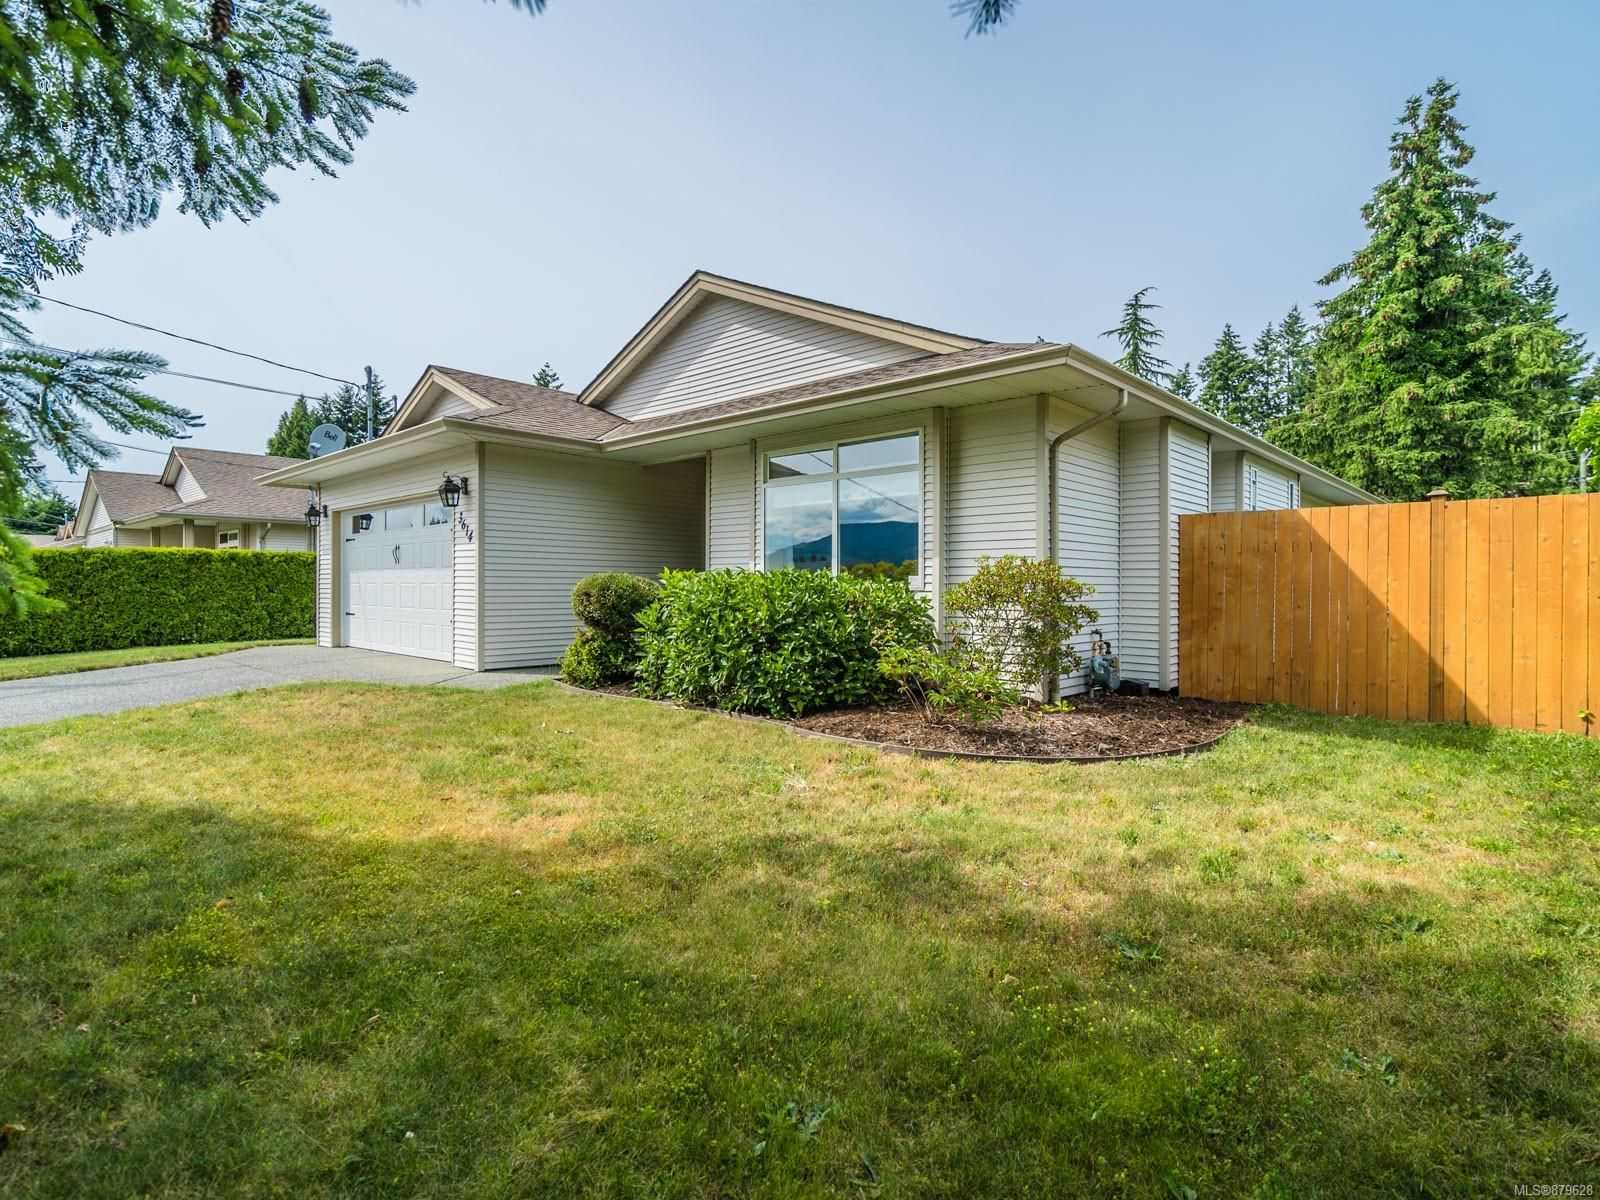 Main Photo: 3614 Victoria Ave in : Na Uplands House for sale (Nanaimo)  : MLS®# 879628